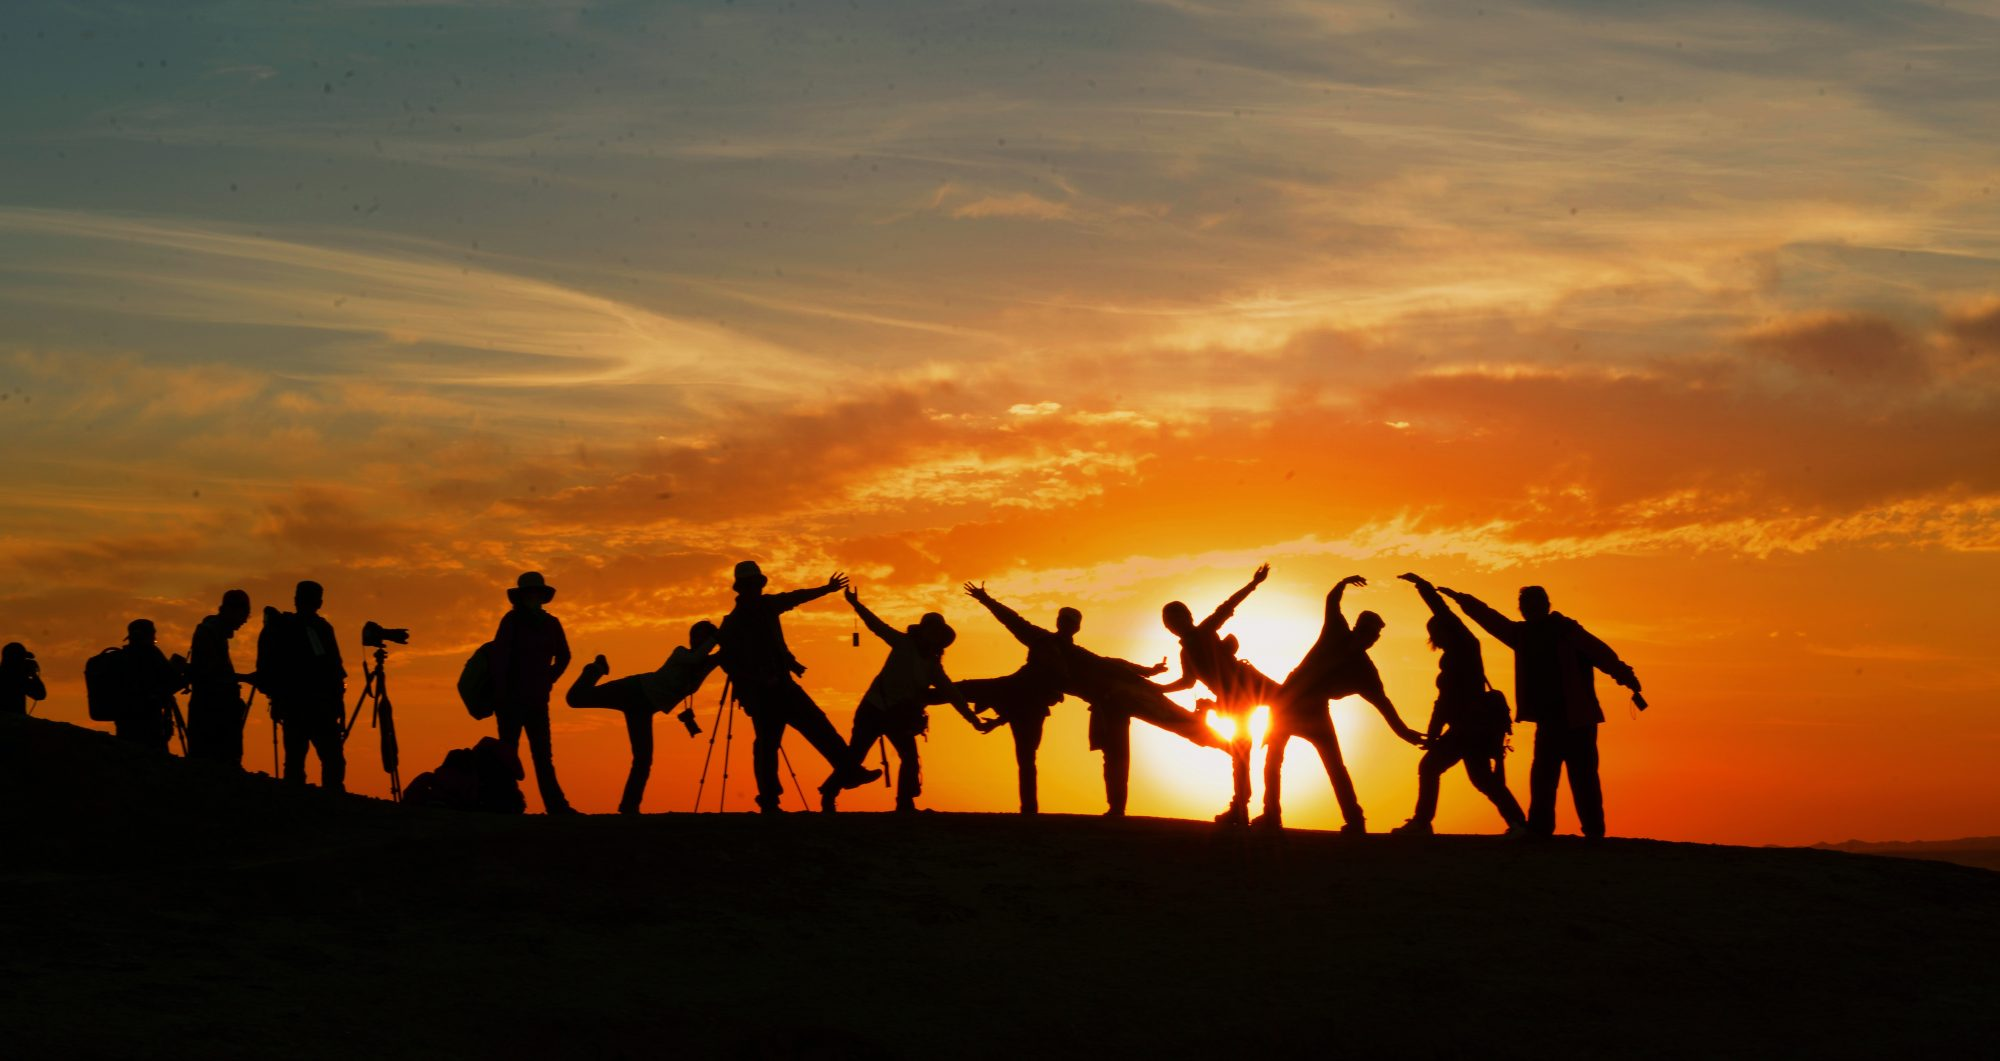 A group of people stand in front of the horizon, the light showing only their silhouettes as they make shapes